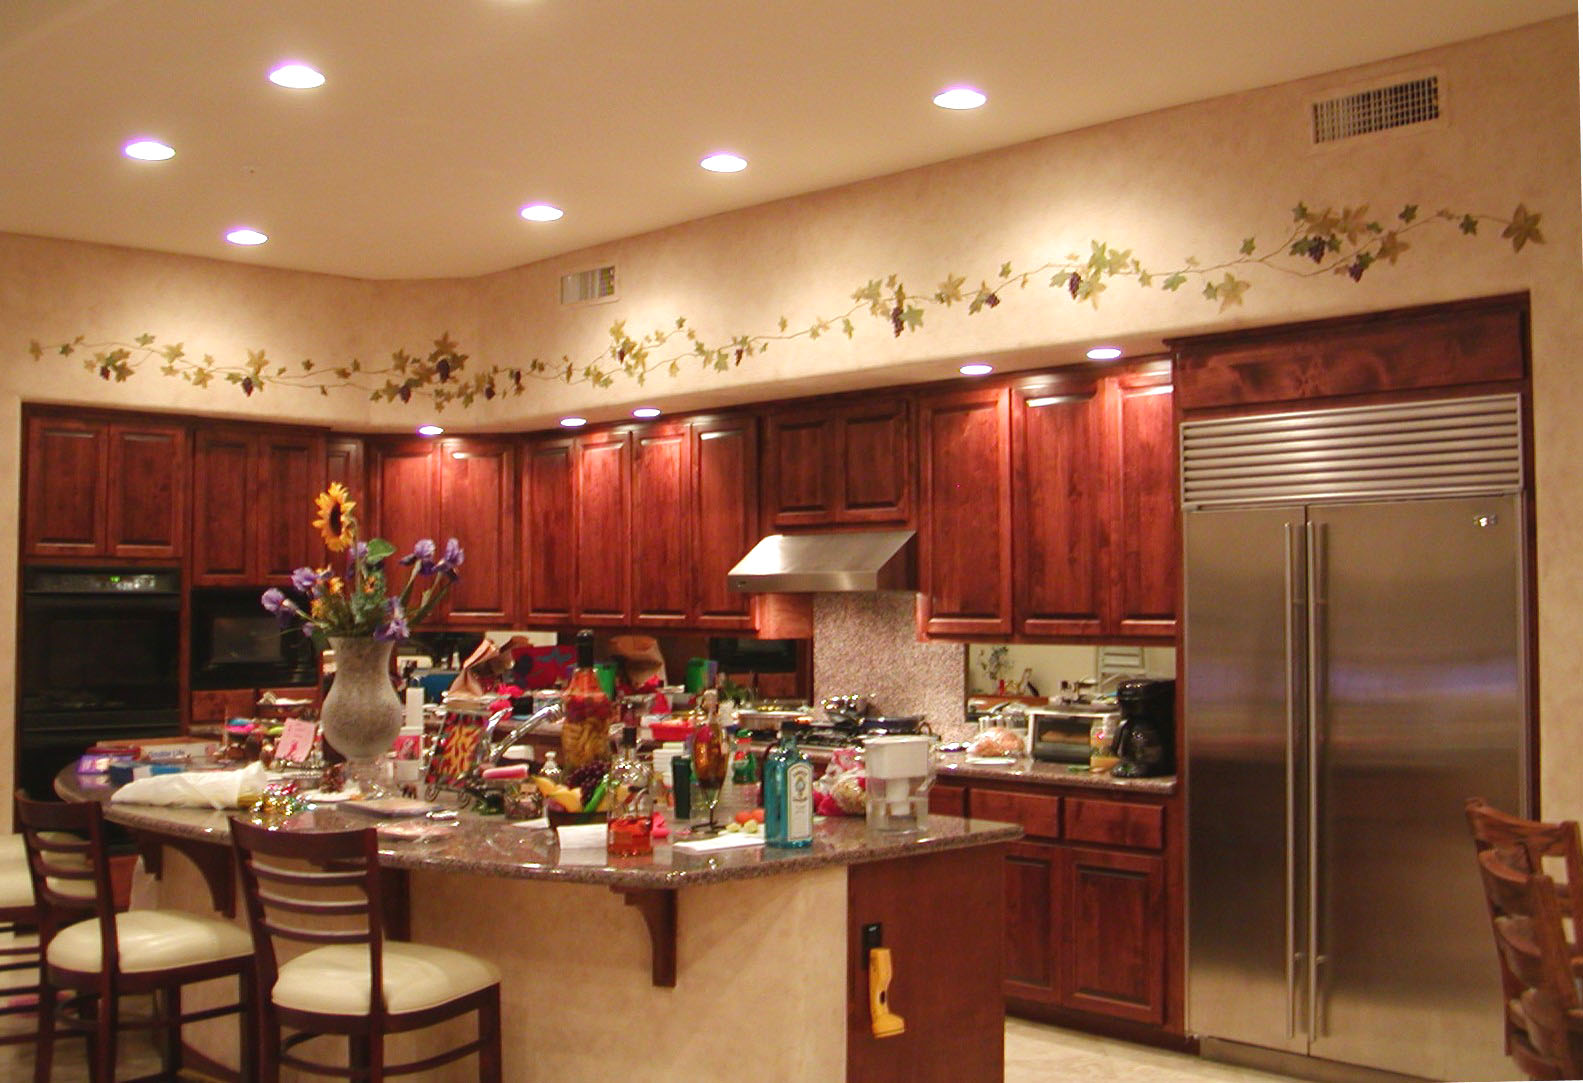 Decorative Painting Ideas On Kitchen Walls